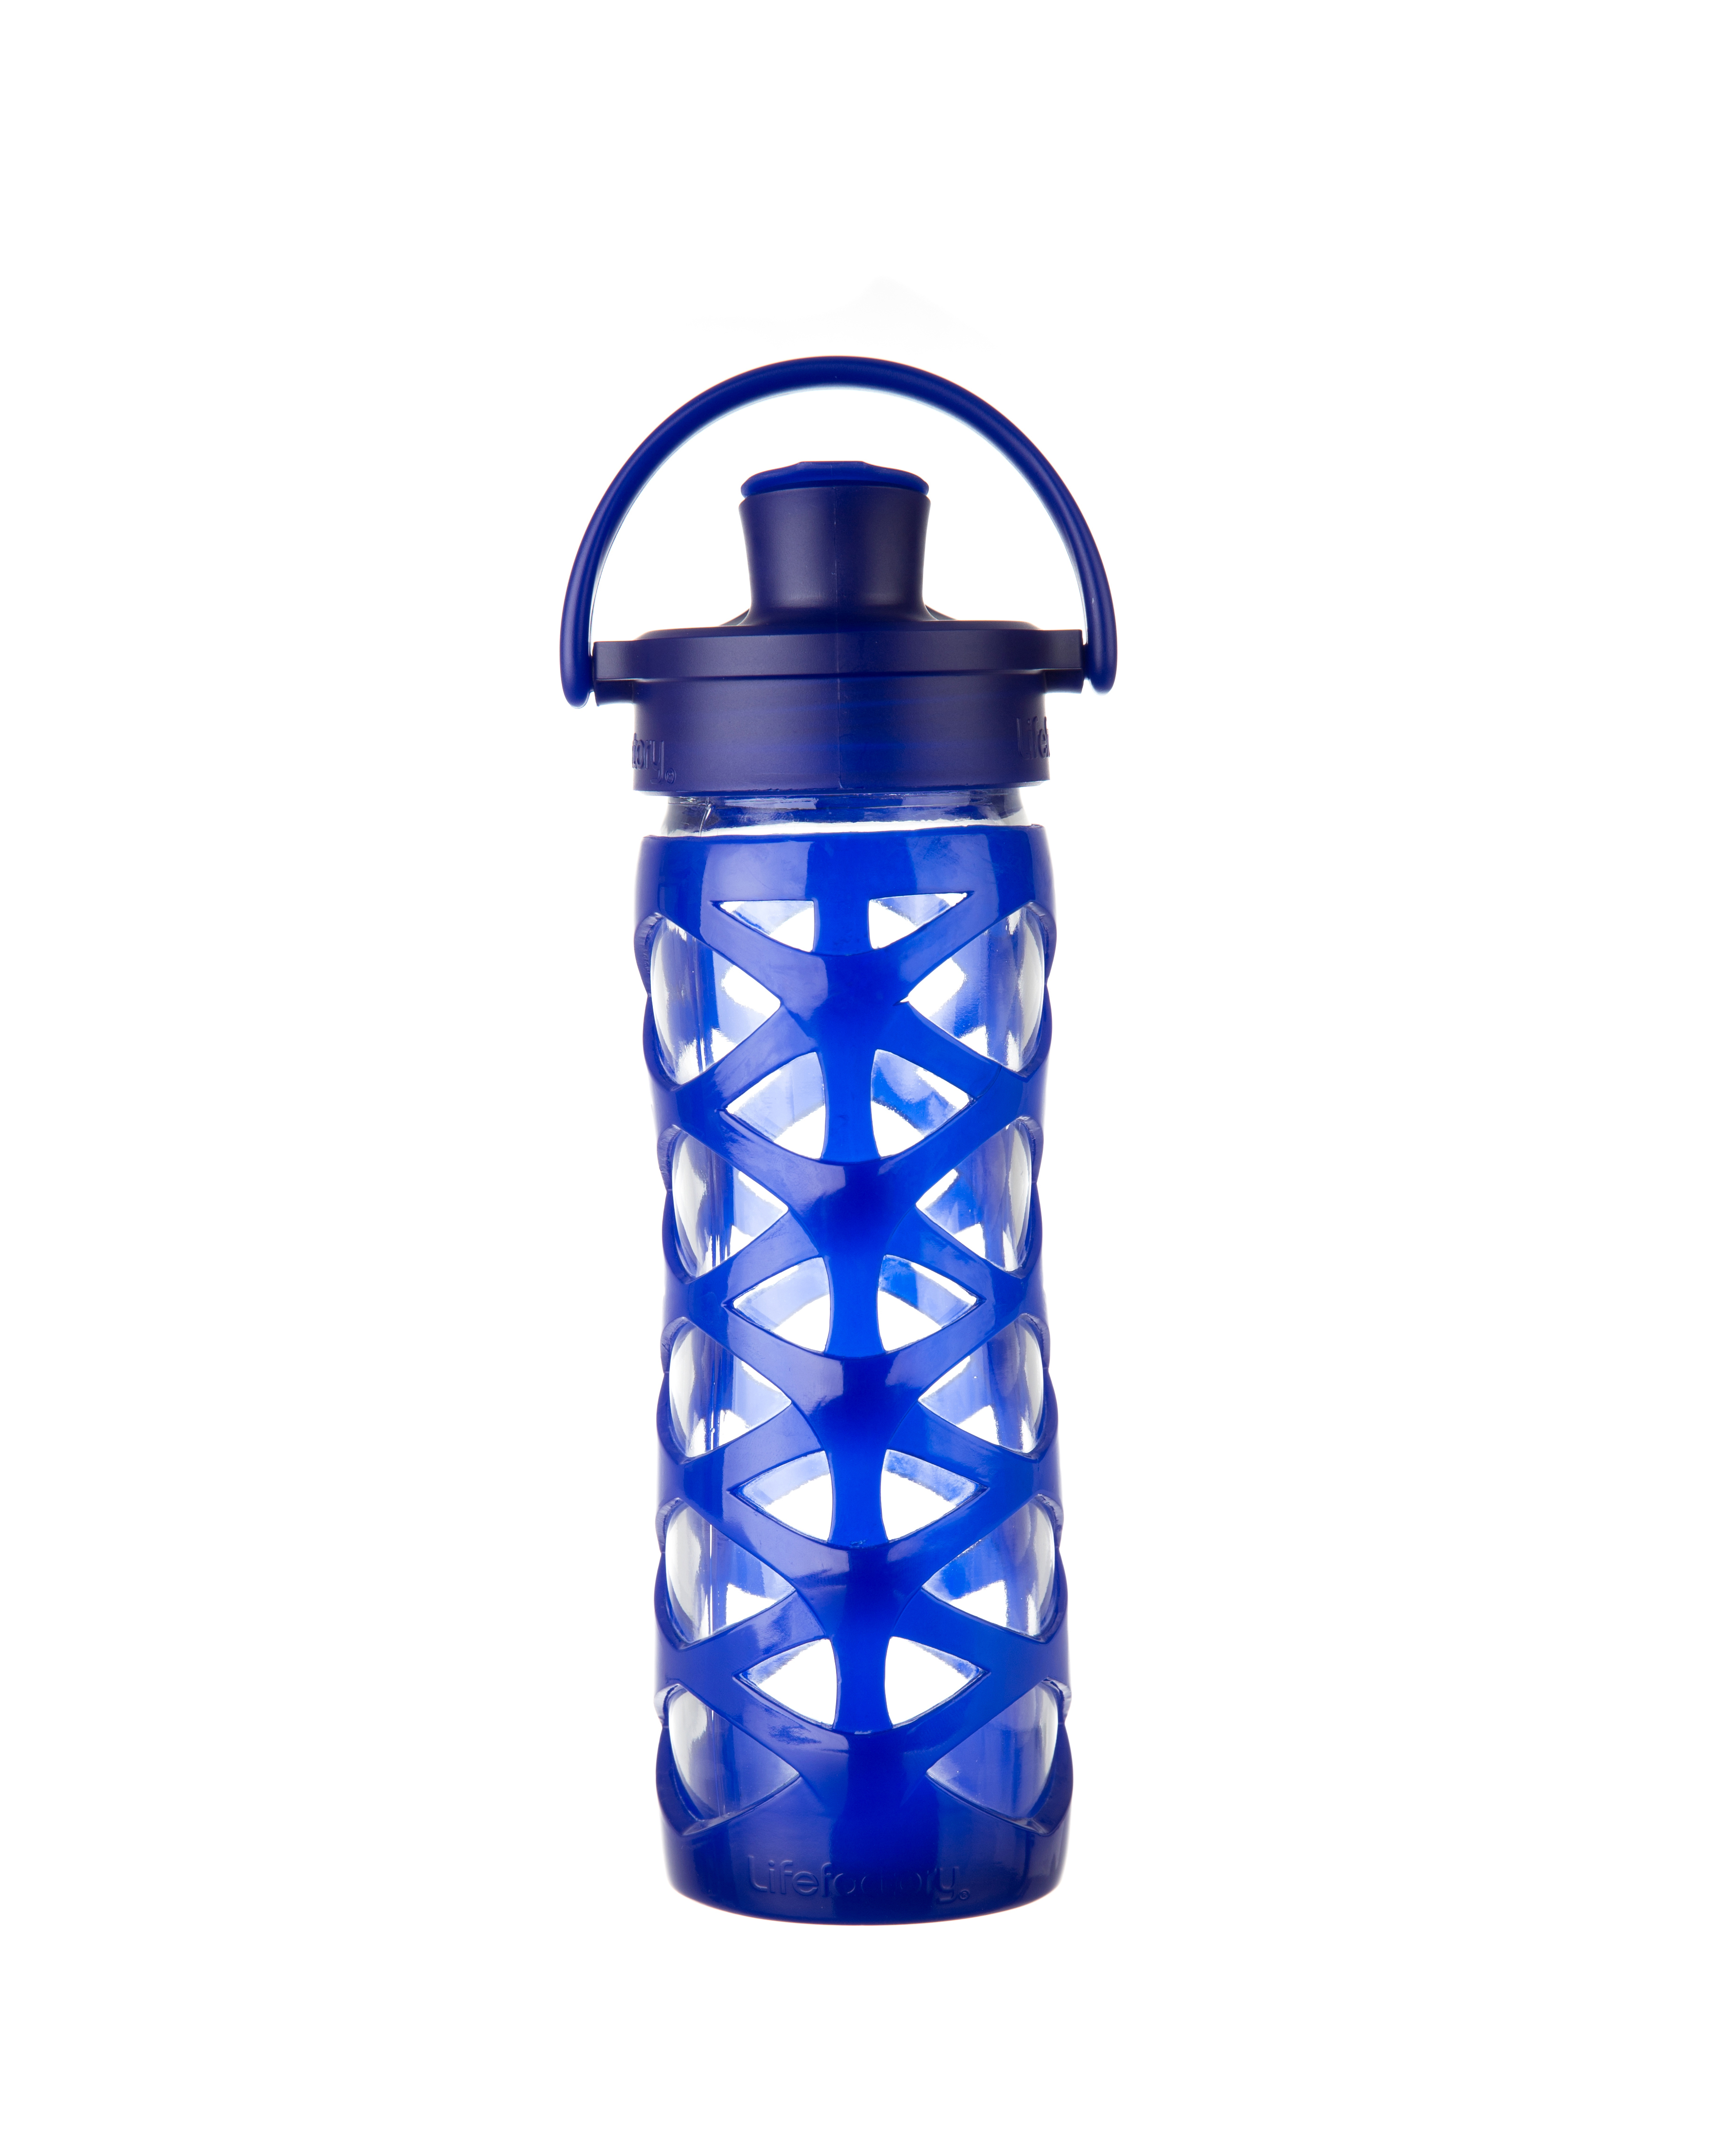 Lifefactory 16 oz Glass Bottle with Active Flip Cap - Sapphire